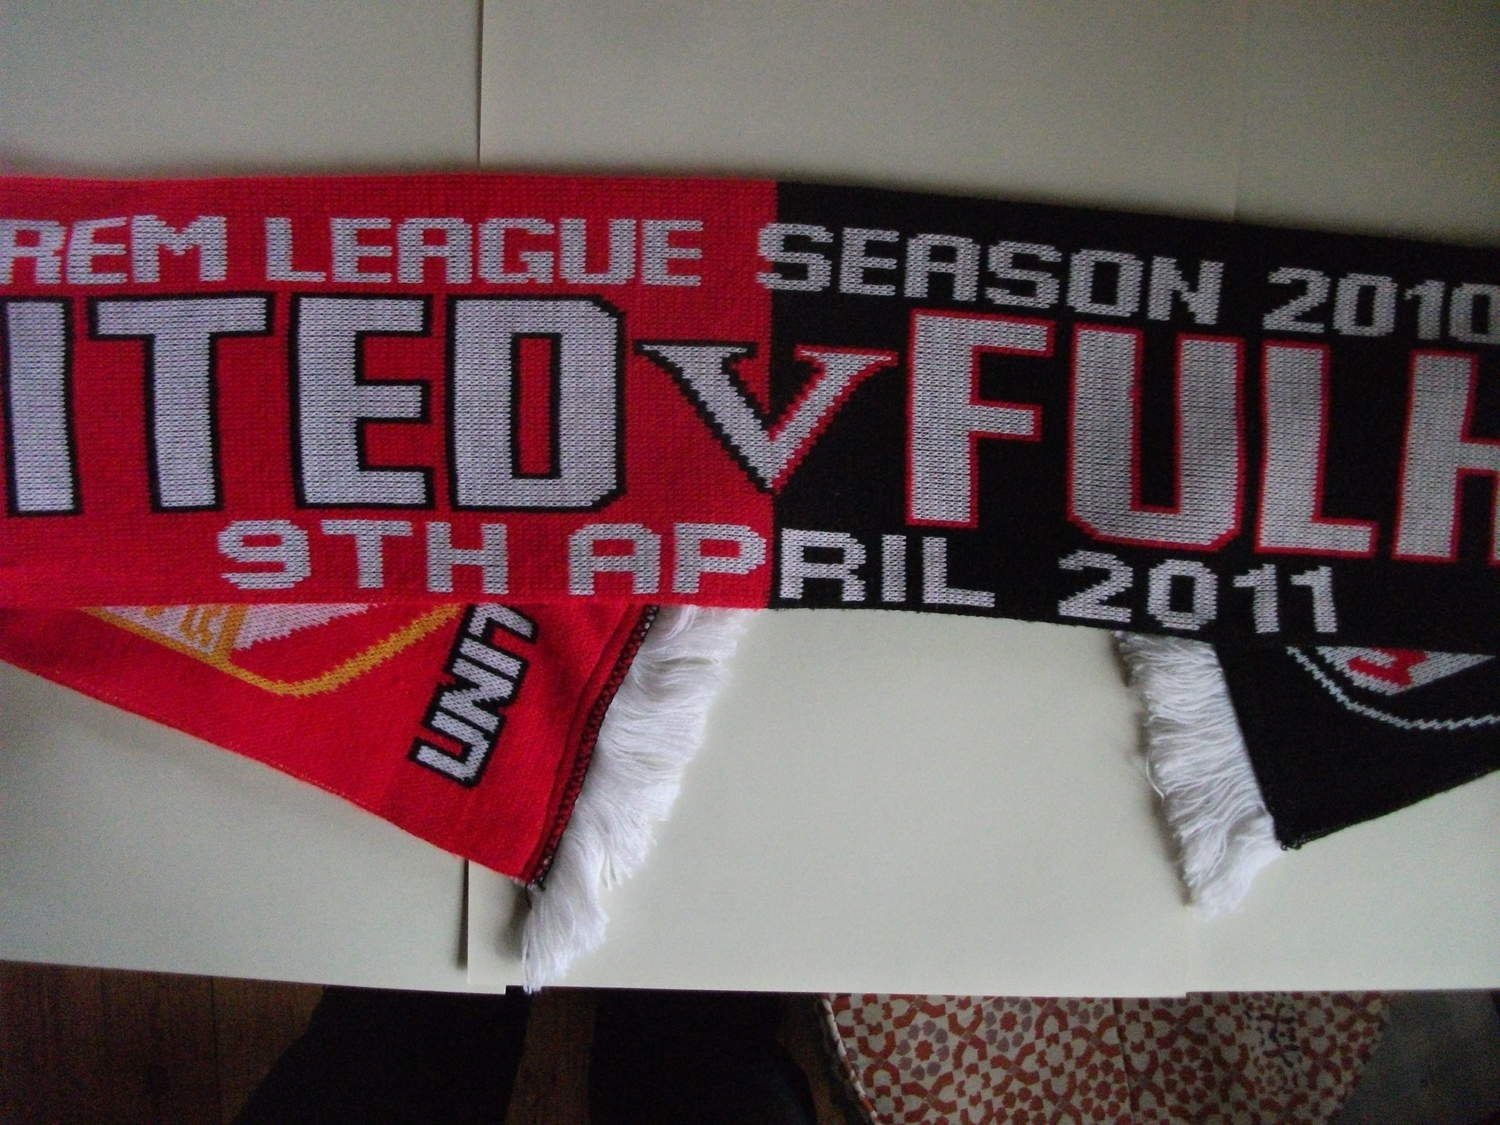 Man United Fulham 9 april 2011 ..Fotboll halsduk